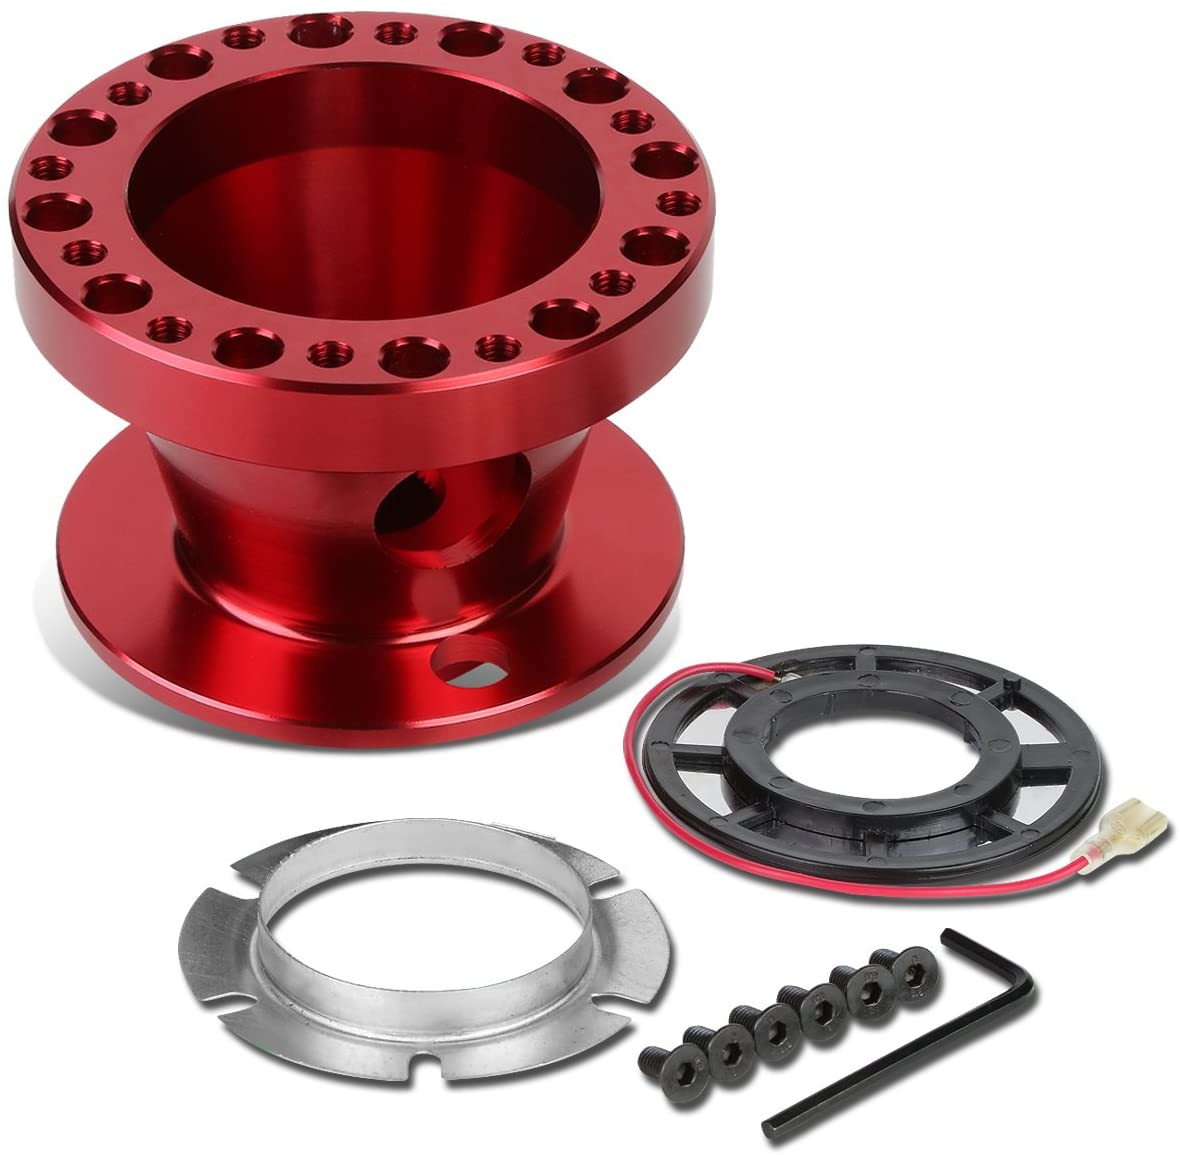 Aluminum Steering Wheel 6-Hole Hub Adaptor Kit (Red) Replacement for Miata / RX7 / RX8 / Protege